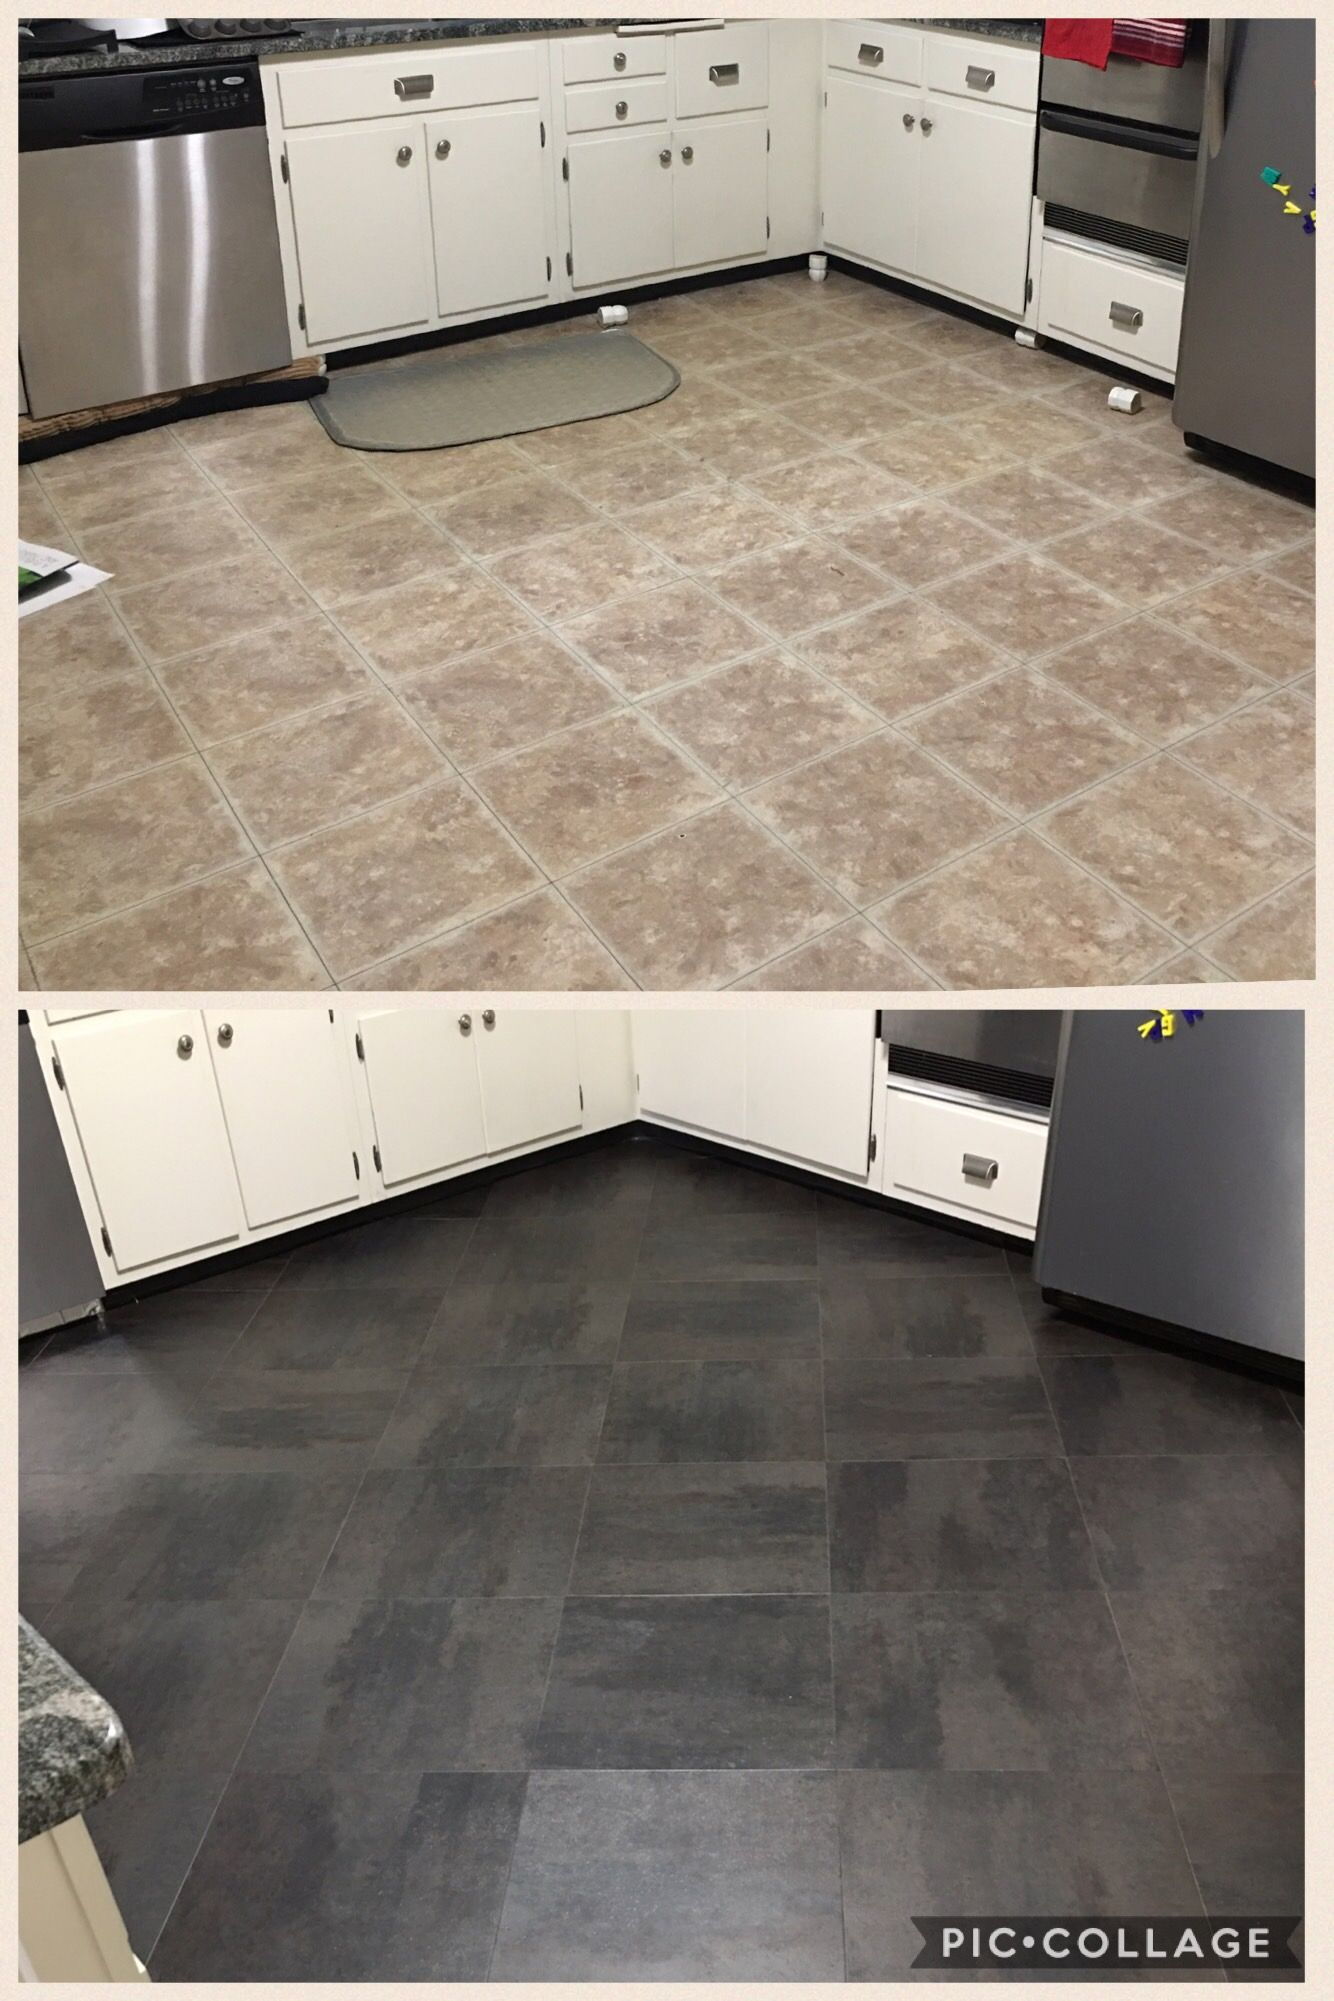 Kitchen floor before after for only 280 gray slate look vinyl kitchen floor before after for only 280 gray slate look vinyl peel and stick tileskitchen dailygadgetfo Images